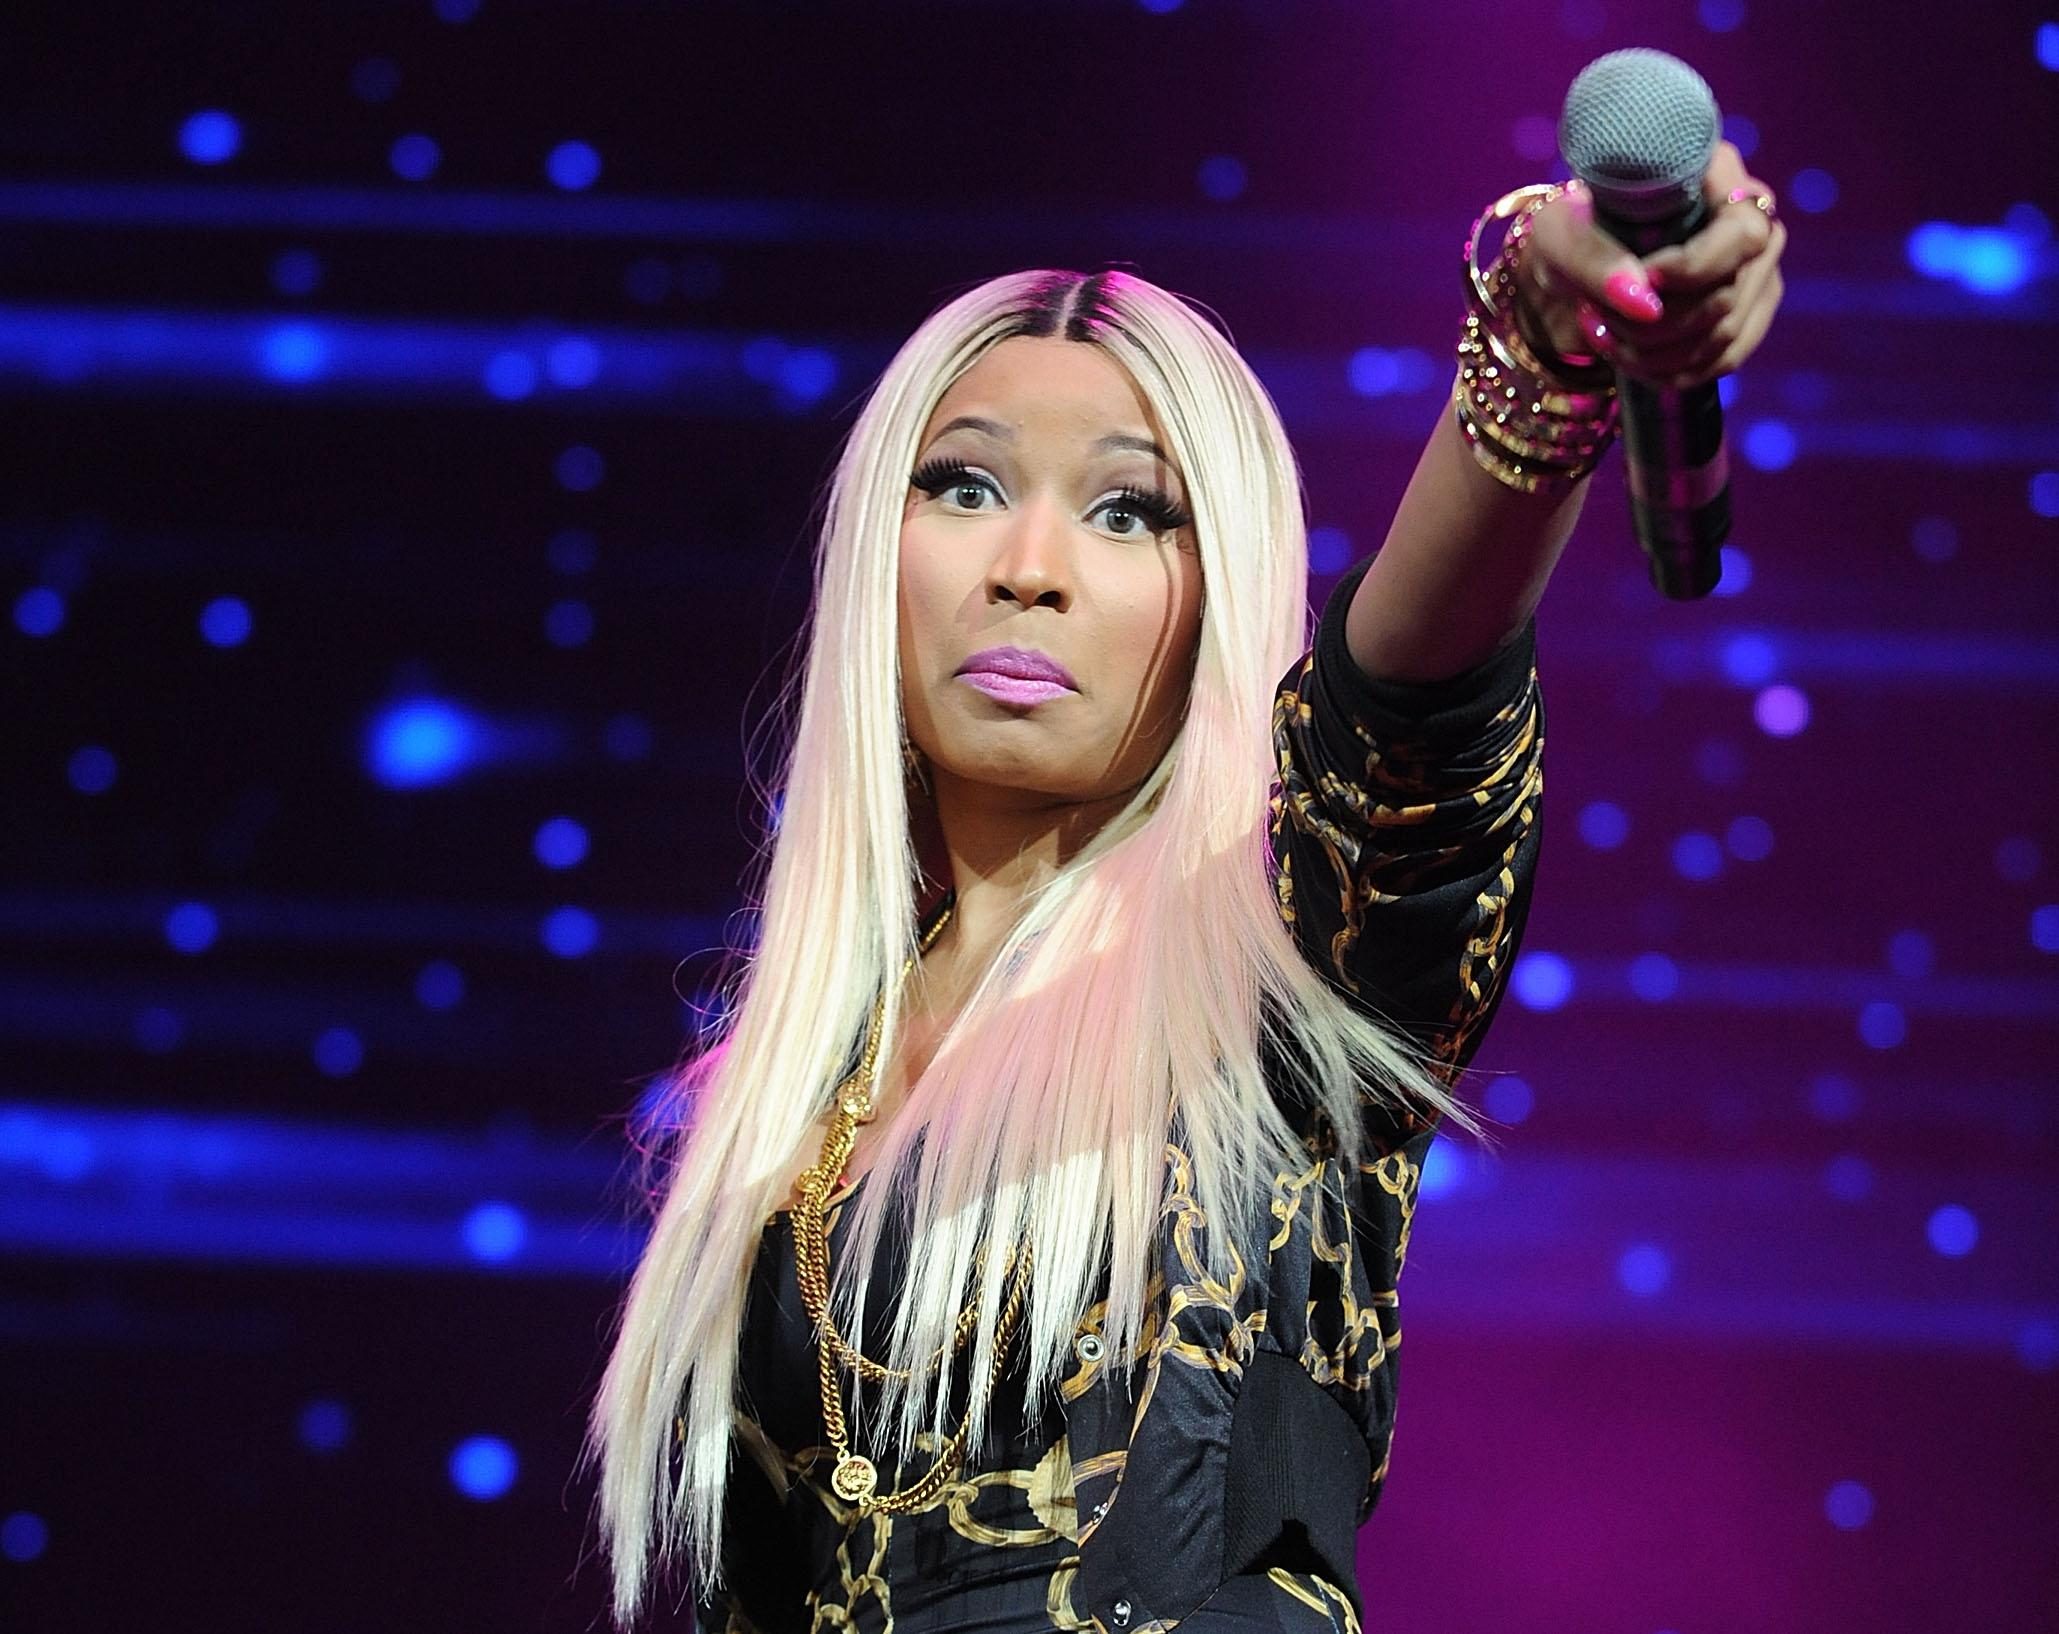 FILE - This Nov. 2, 2013 file photo shows hip-hop artist Nicki Minaj at the Power 105.1's Powerhouse Concert at the Barclays Center in New York. Minaj is being criticized after using a photo of Malcolm X with a gun in his hands, juxtaposed with a racial slur, for her new single. Minaj posted the photo Wednesday, Feb. 12, 2014, on her website and Instagram page. The rapper was bashed on social media for the using the famous image of the black nationalist, assassinated 49 years ago this month on her single cover. (Photo by Brad Barket/Invision/AP, File)